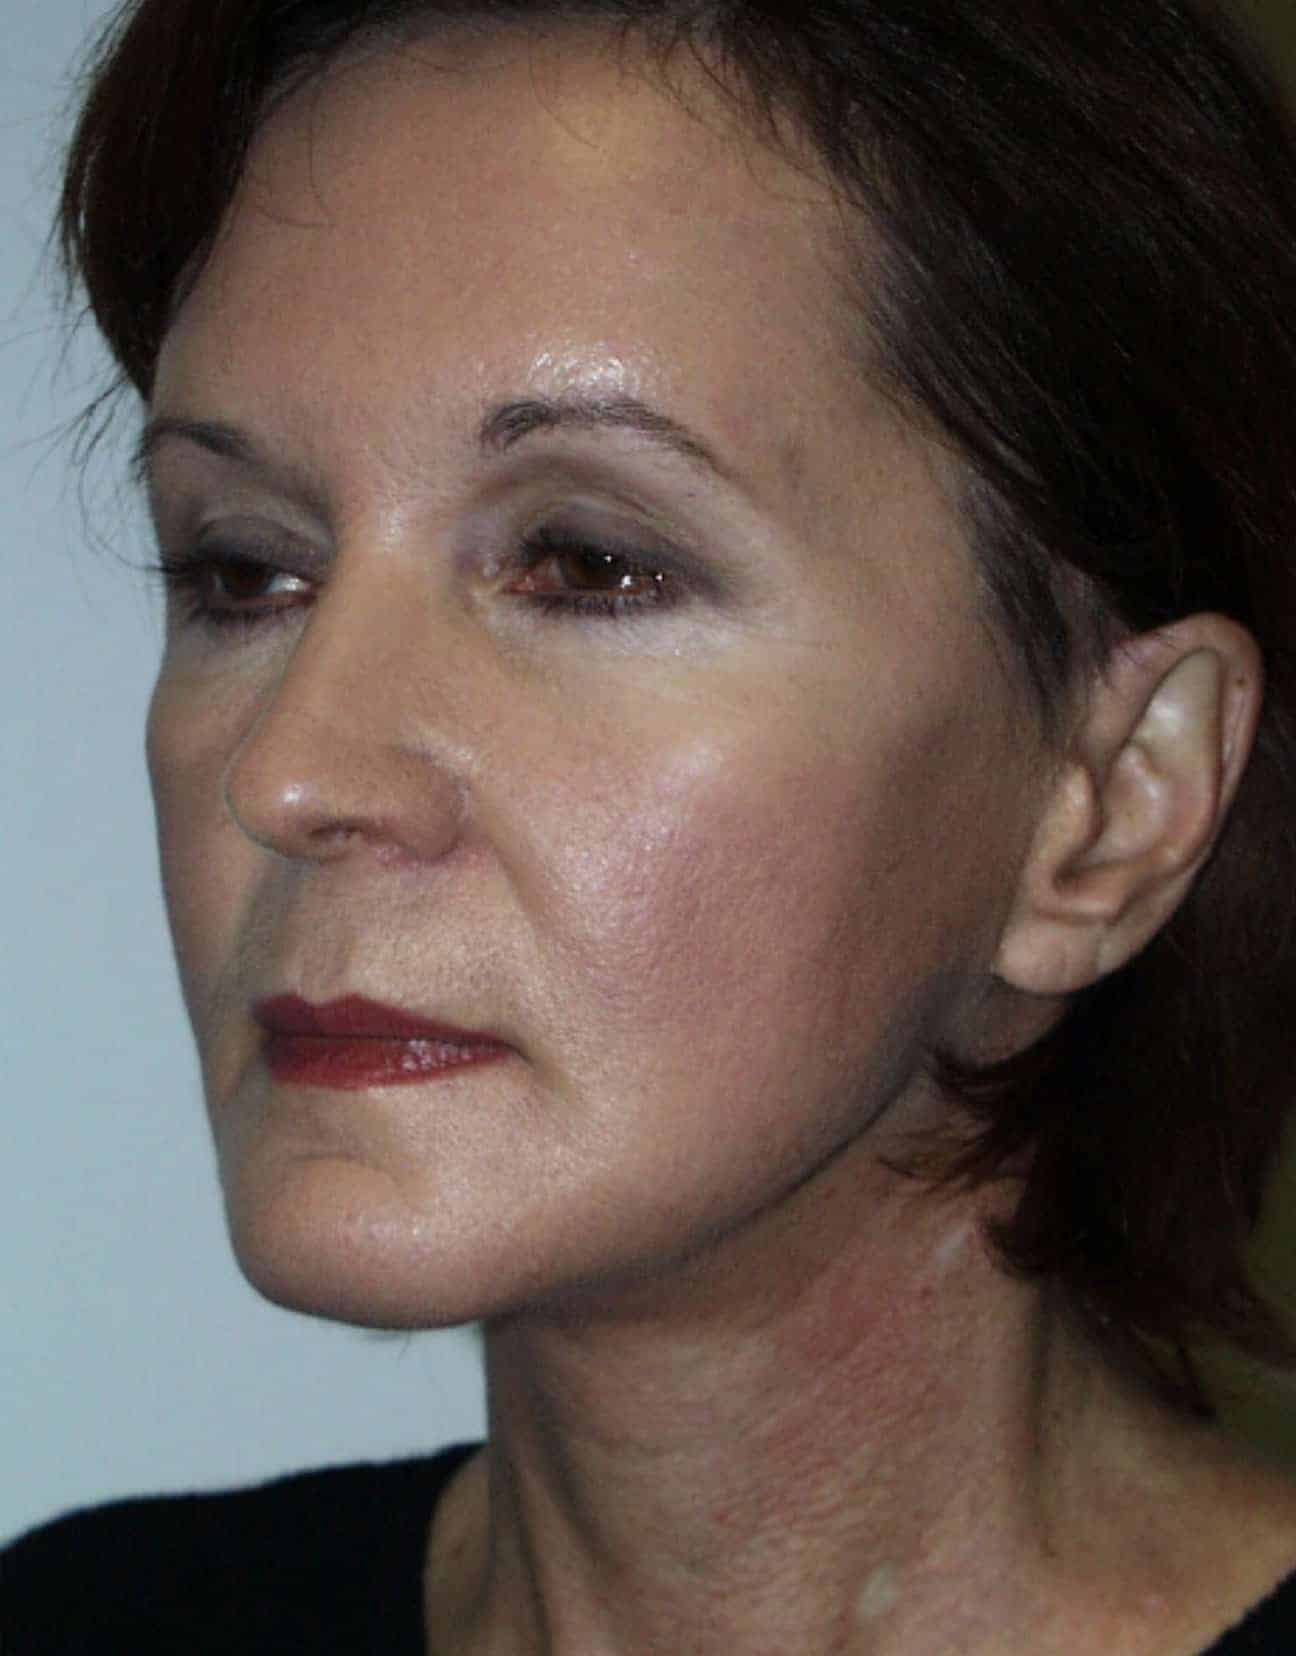 cortez facial plastic surgery facelift angle after